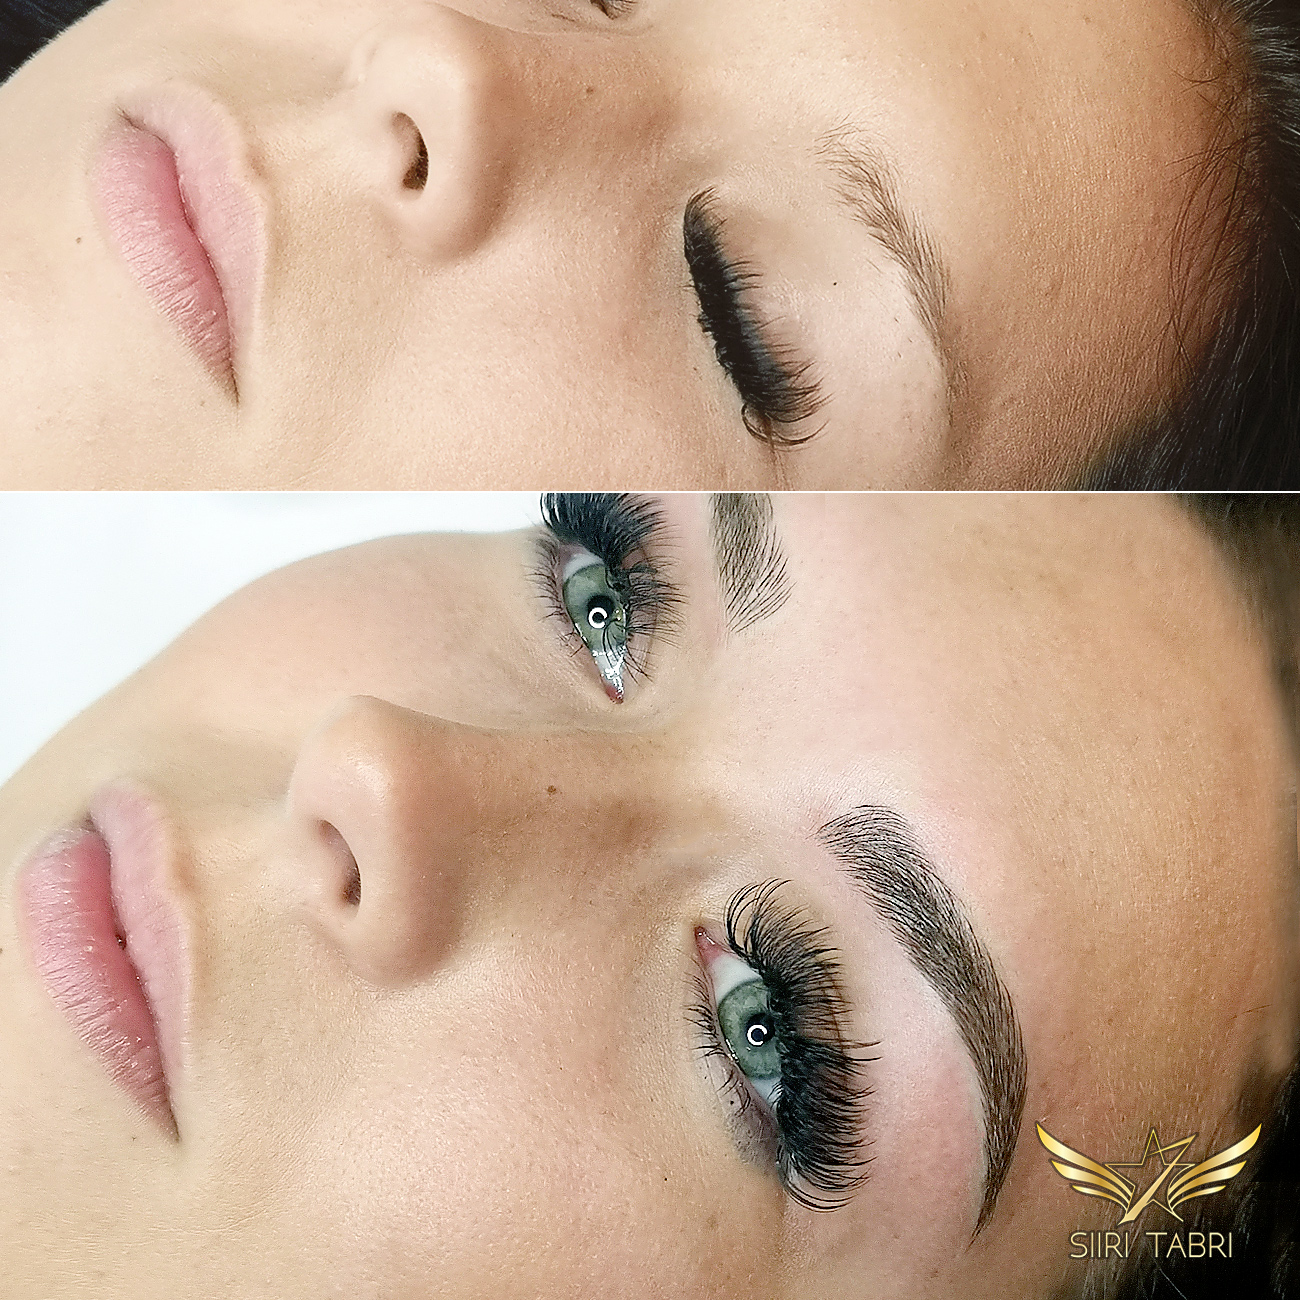 Light microblading. Here's just one change when a pretty girl became even prettier as a result of Light microblading.